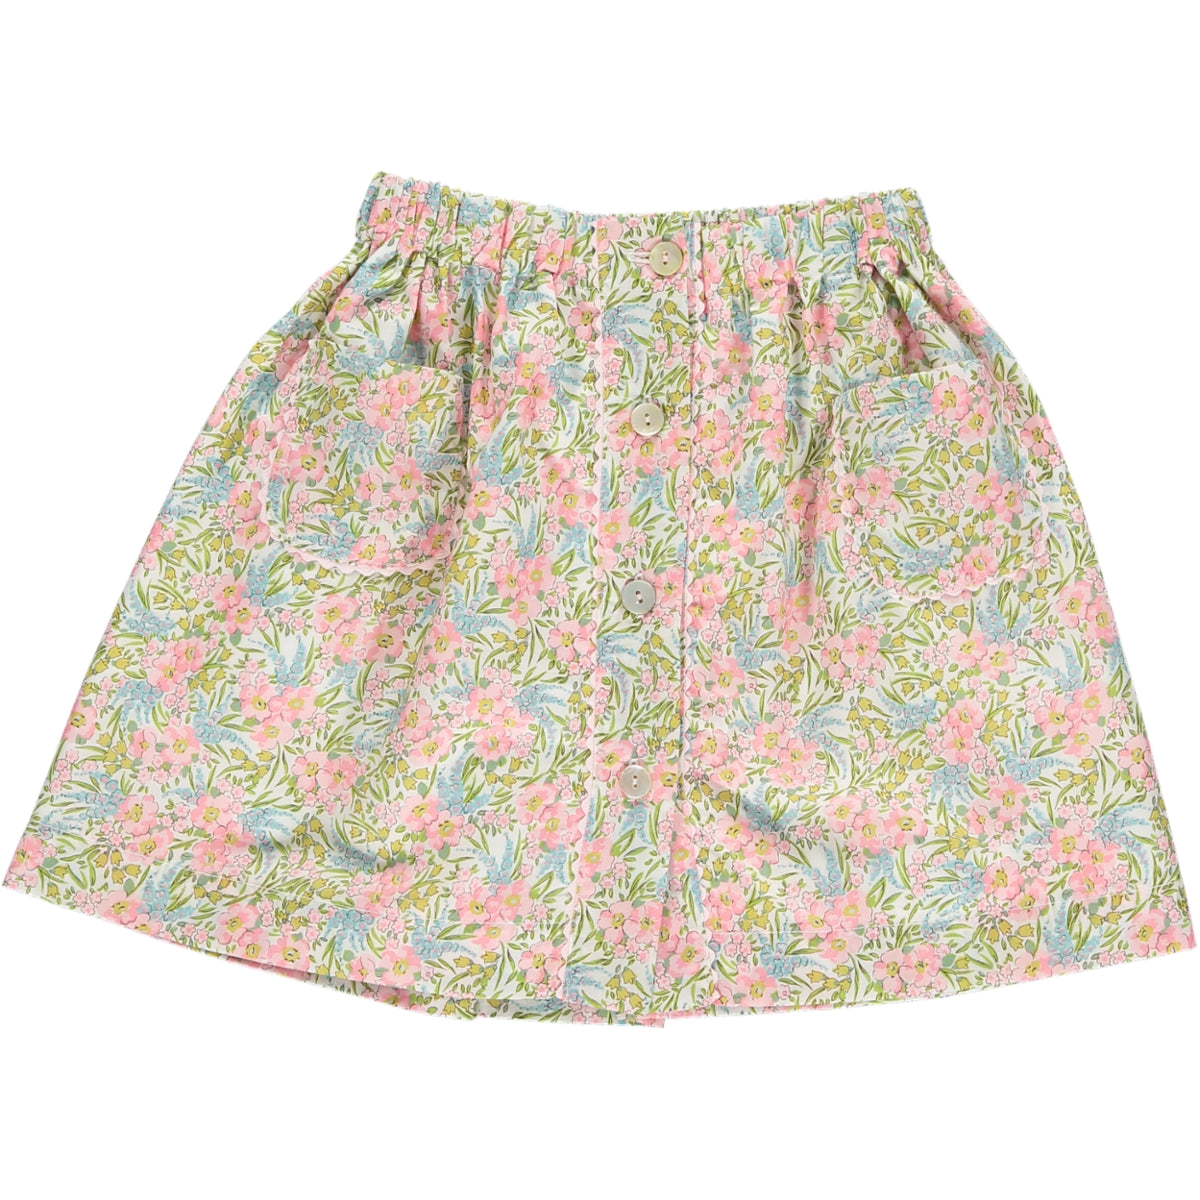 Juliette Skirt Pink Floral Liberty